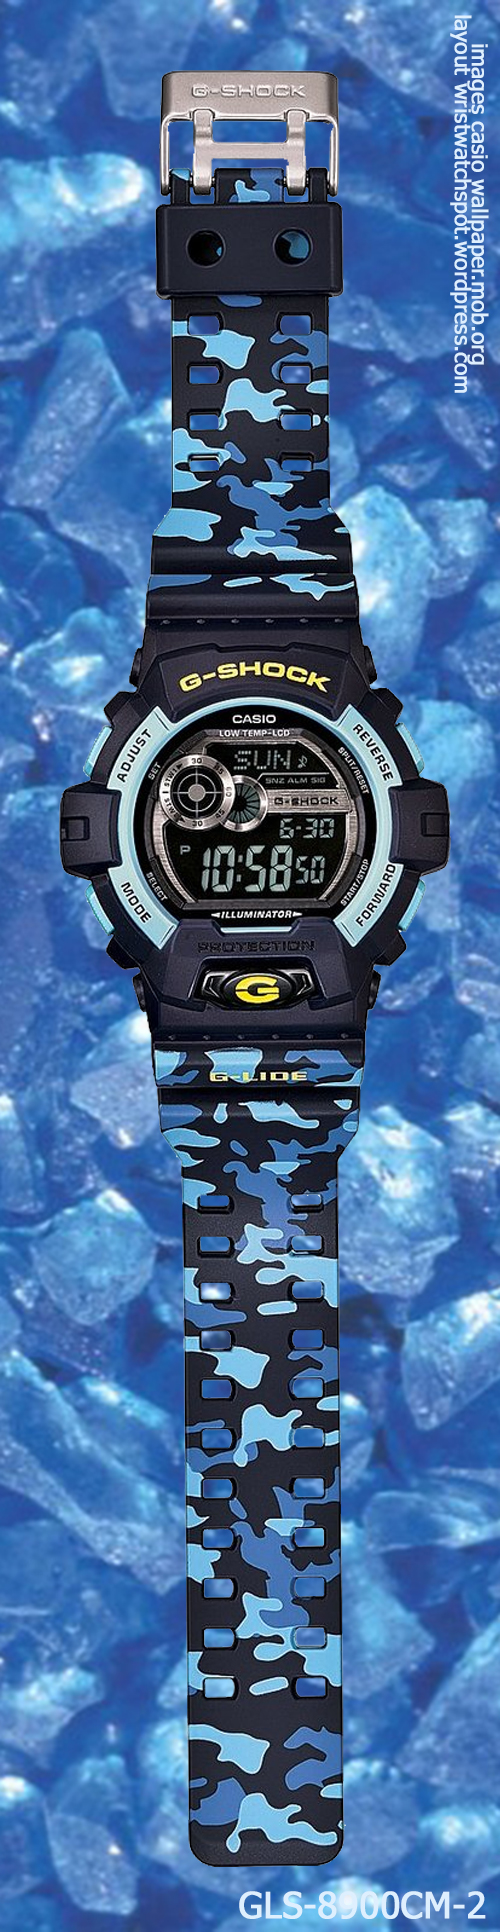 g-shock_gls-8900cm-2_front camouflage watch 2014 sports fashion